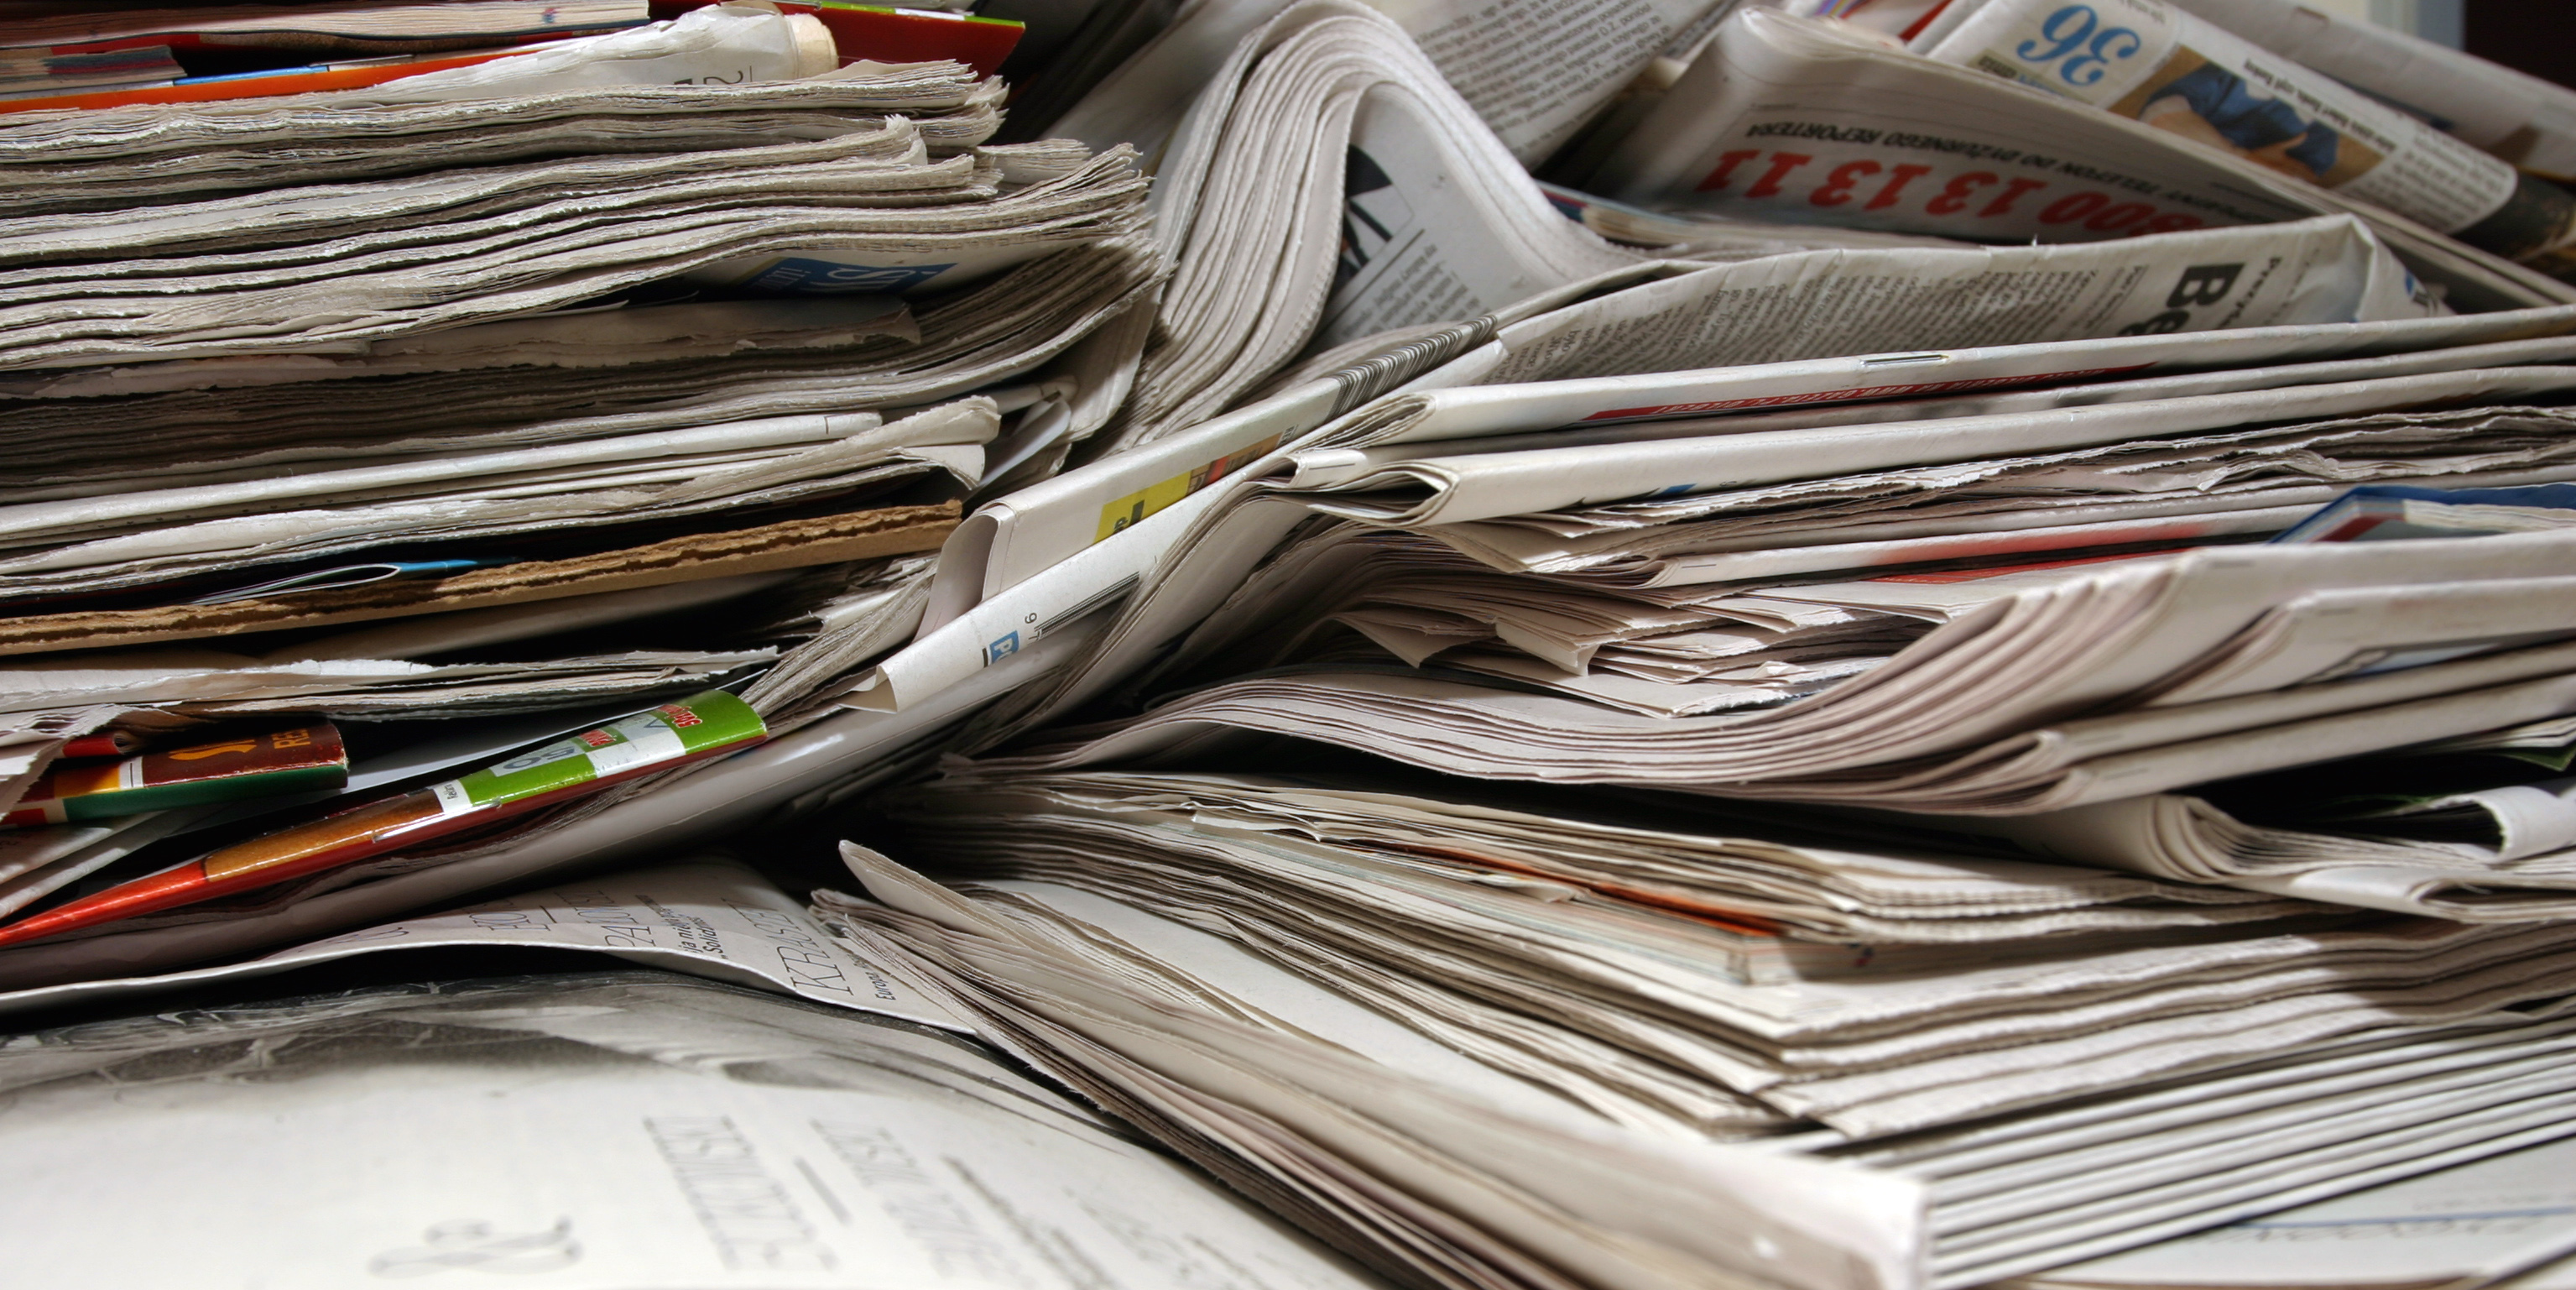 How the newspapers will die